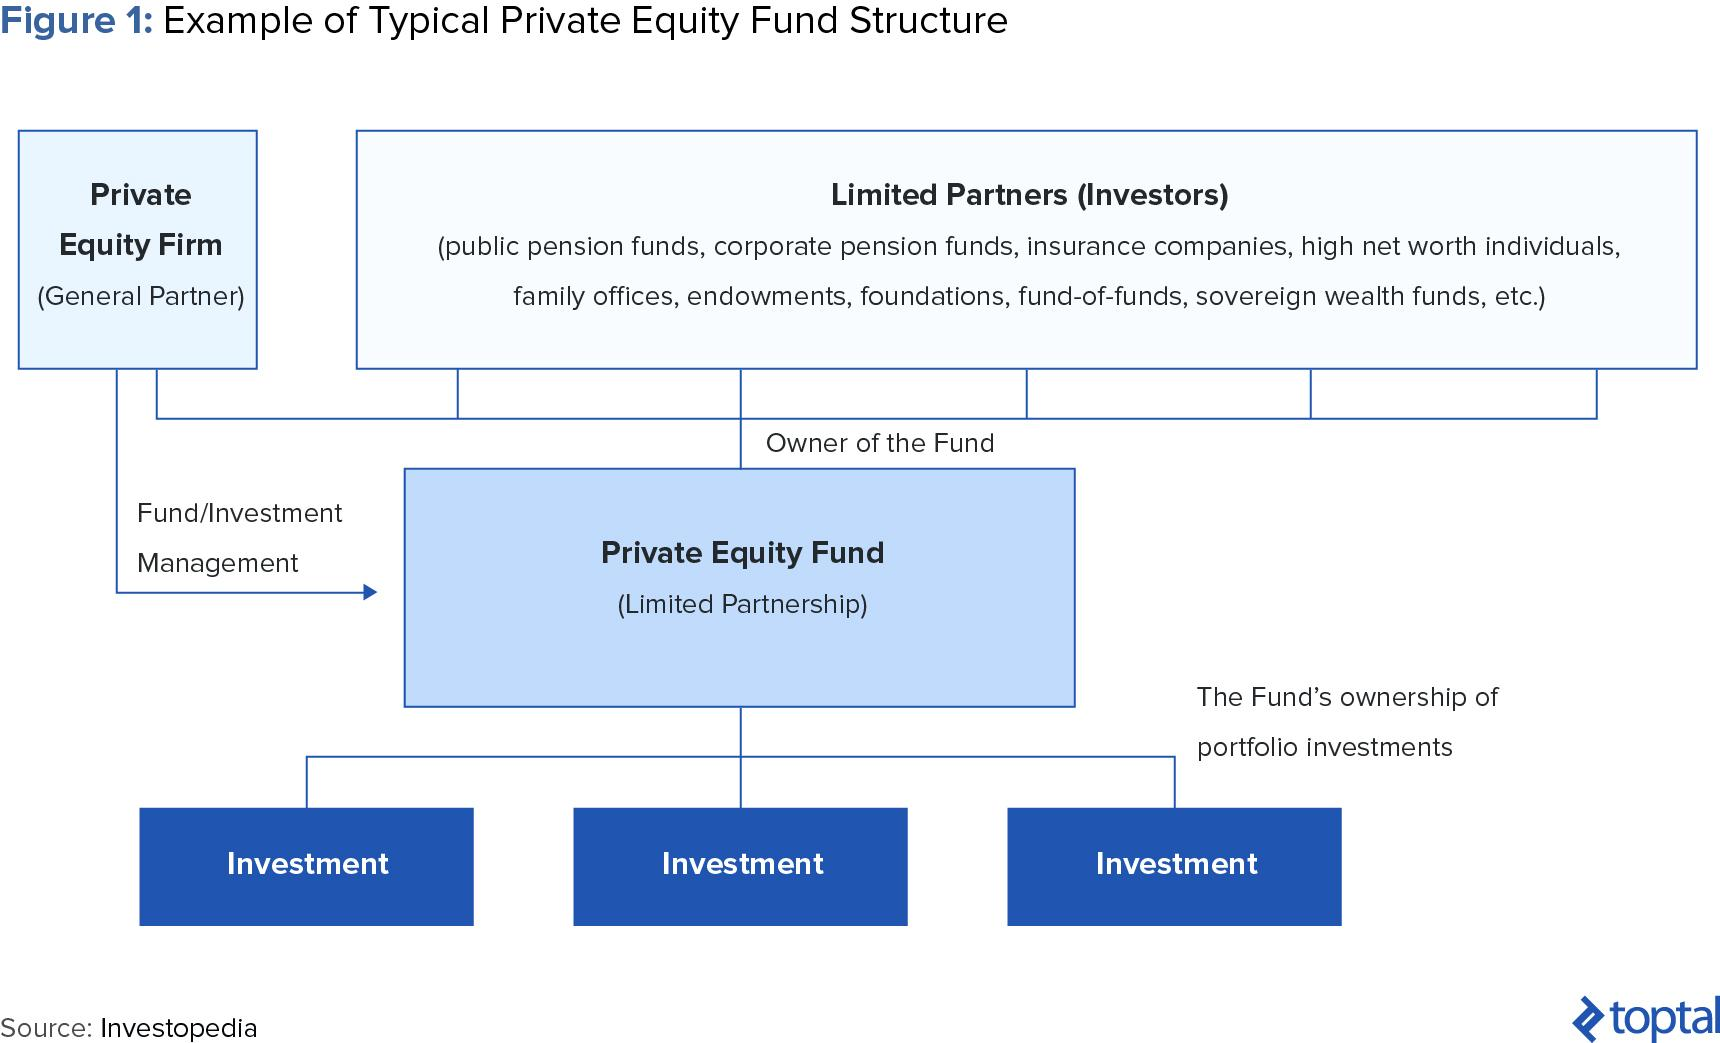 Figure 1: Example of Typical Private Equity Fund Structure